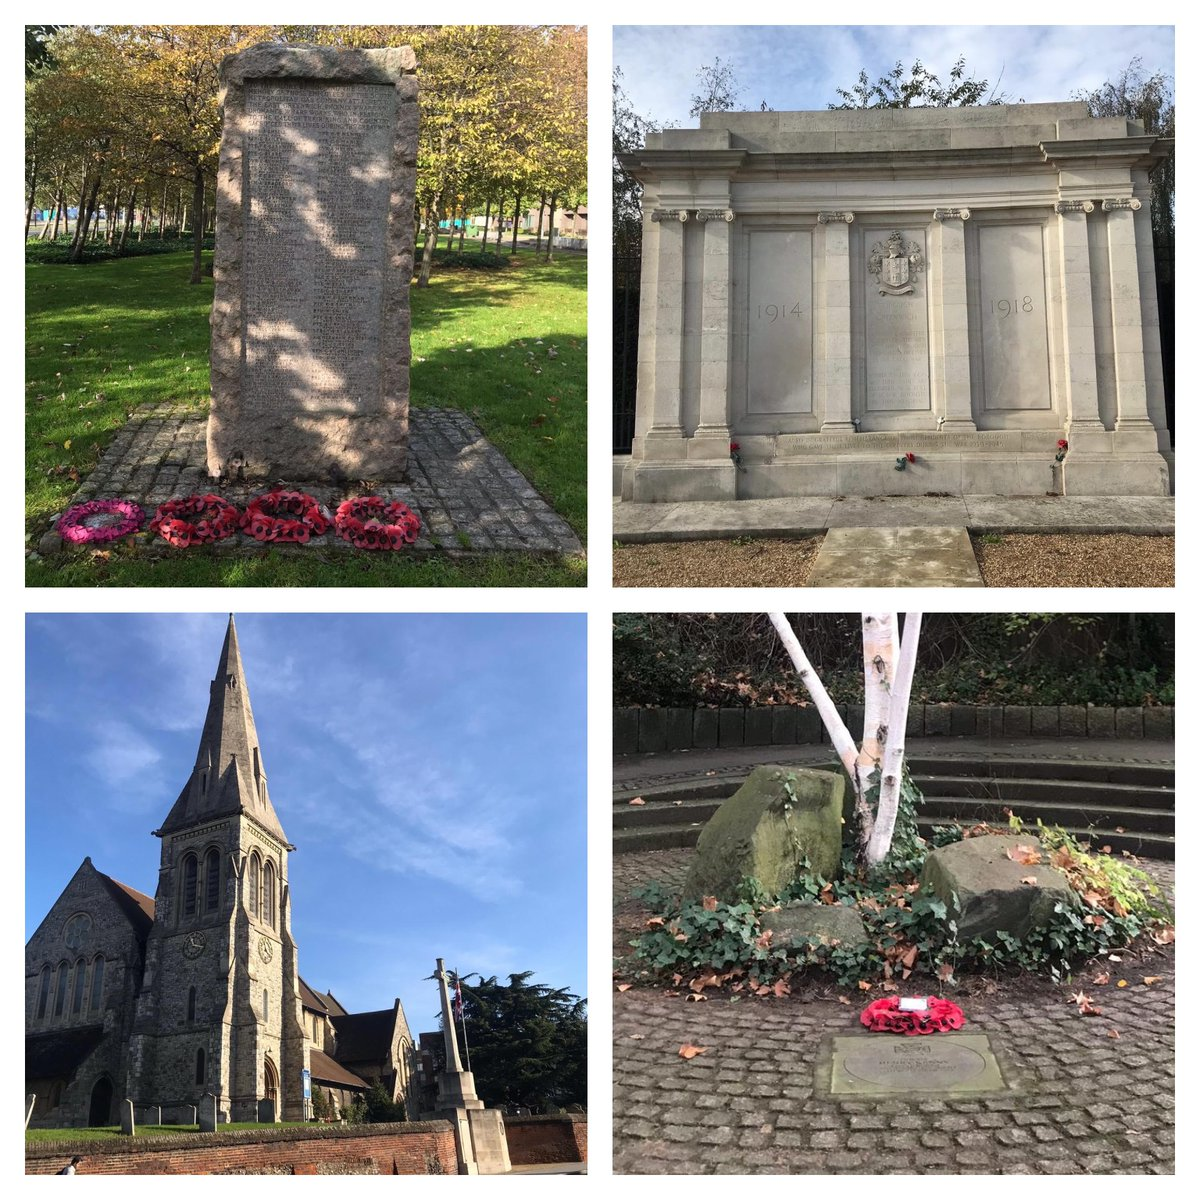 Usually @MeganRoseCable & I would be out & about checking our war memorials & VC stones, but this year has been a little different. Despite all that has taken place, it is still important we take time to remember this #ArmisticeDay #WeWillRememberThem #RemembranceDay2020